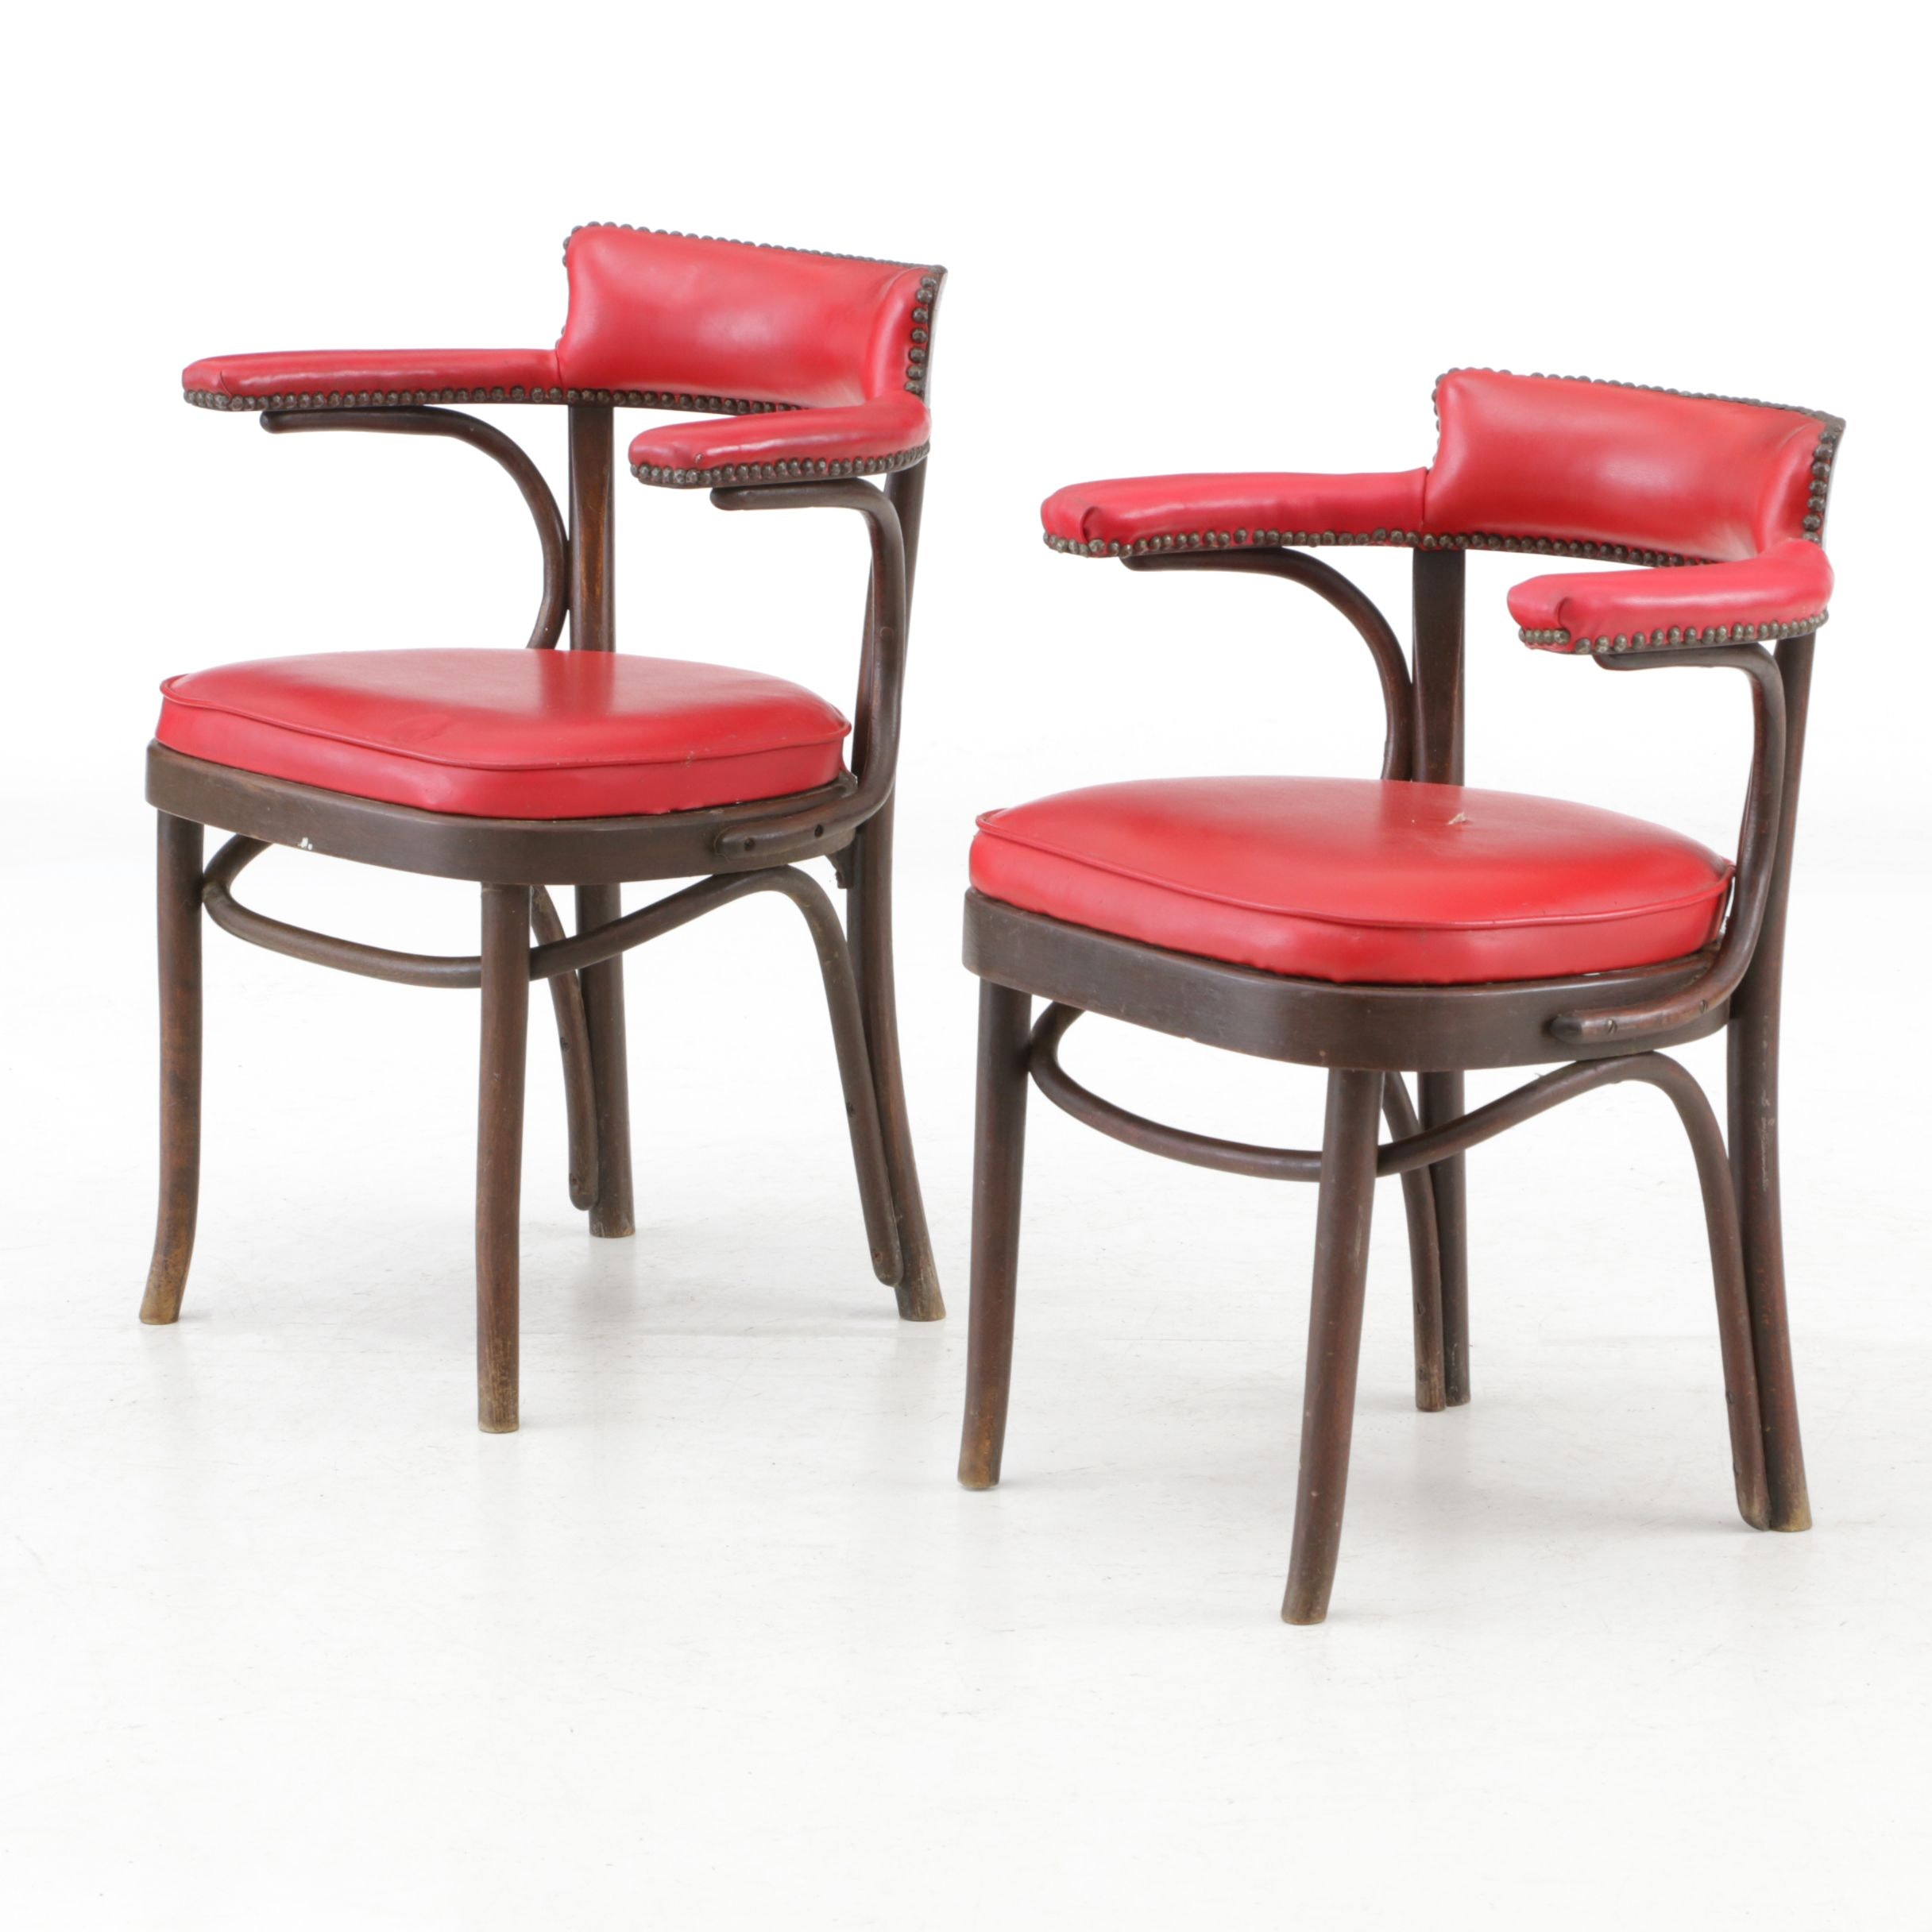 Kenwood Golf and Country Club Bentwood Armchairs by Thonet, Mid-20th Century